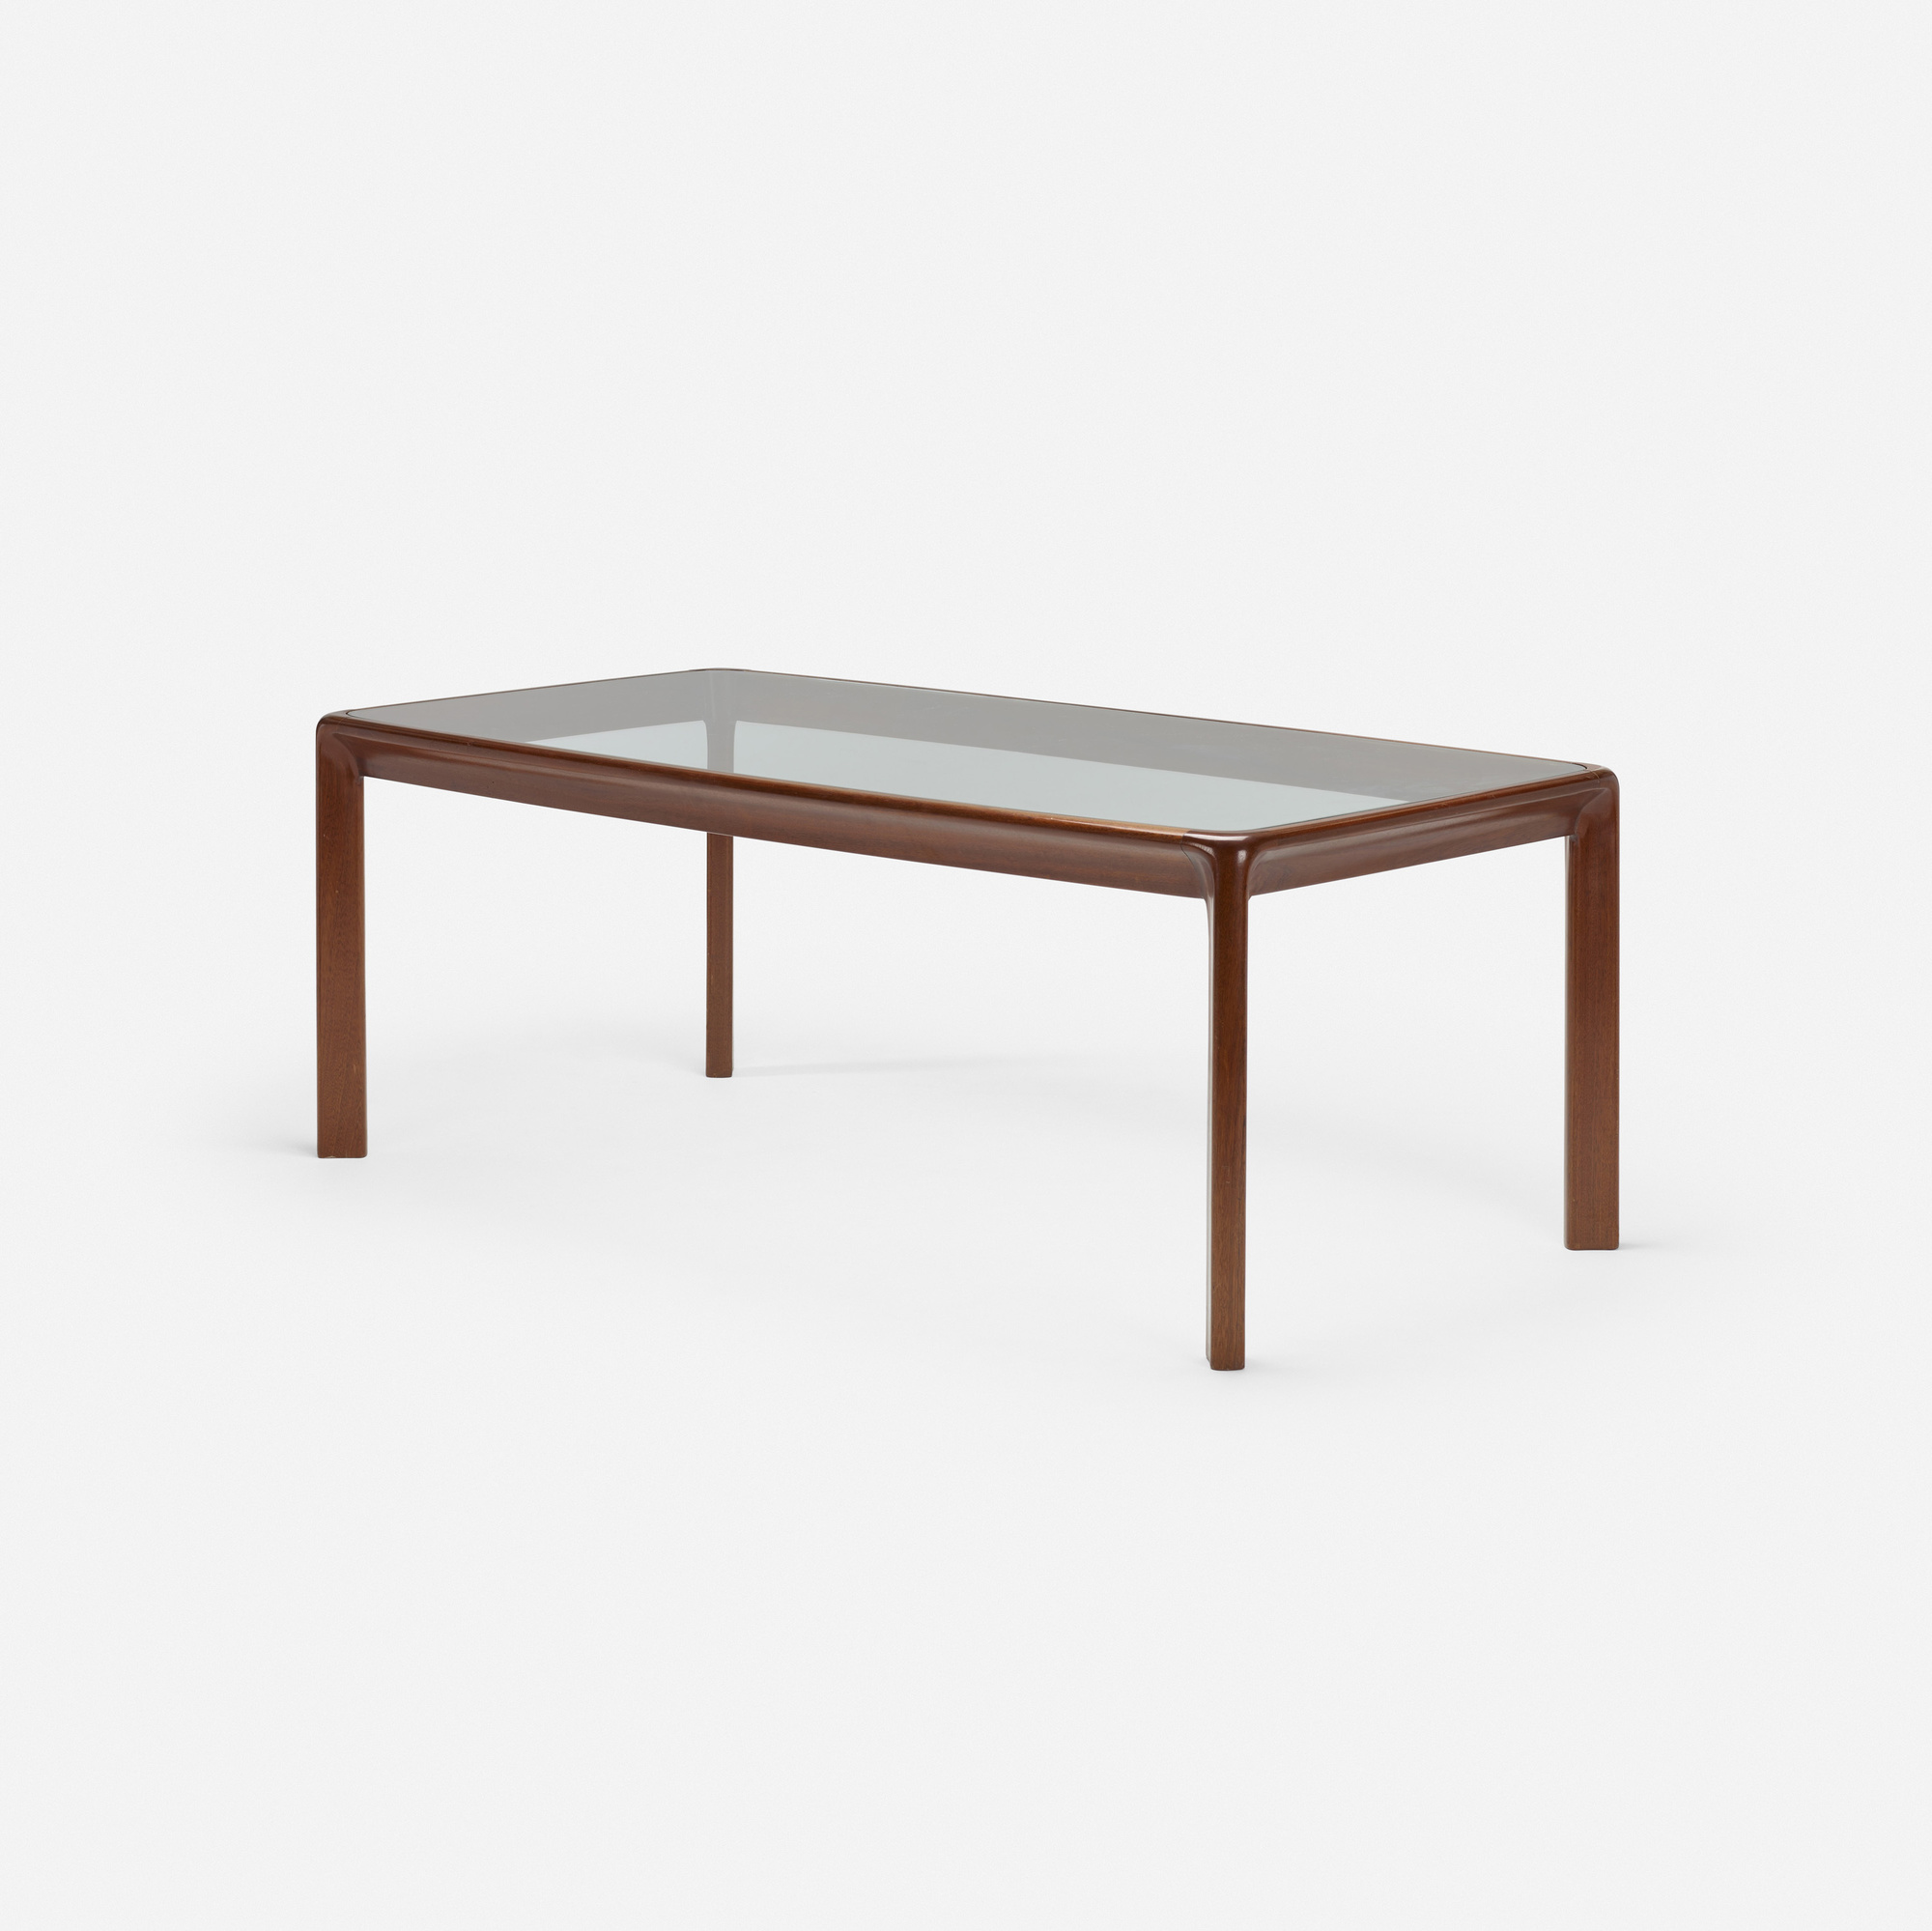 517: Angelo Mangiarotti / Denos dining table (1 of 3)